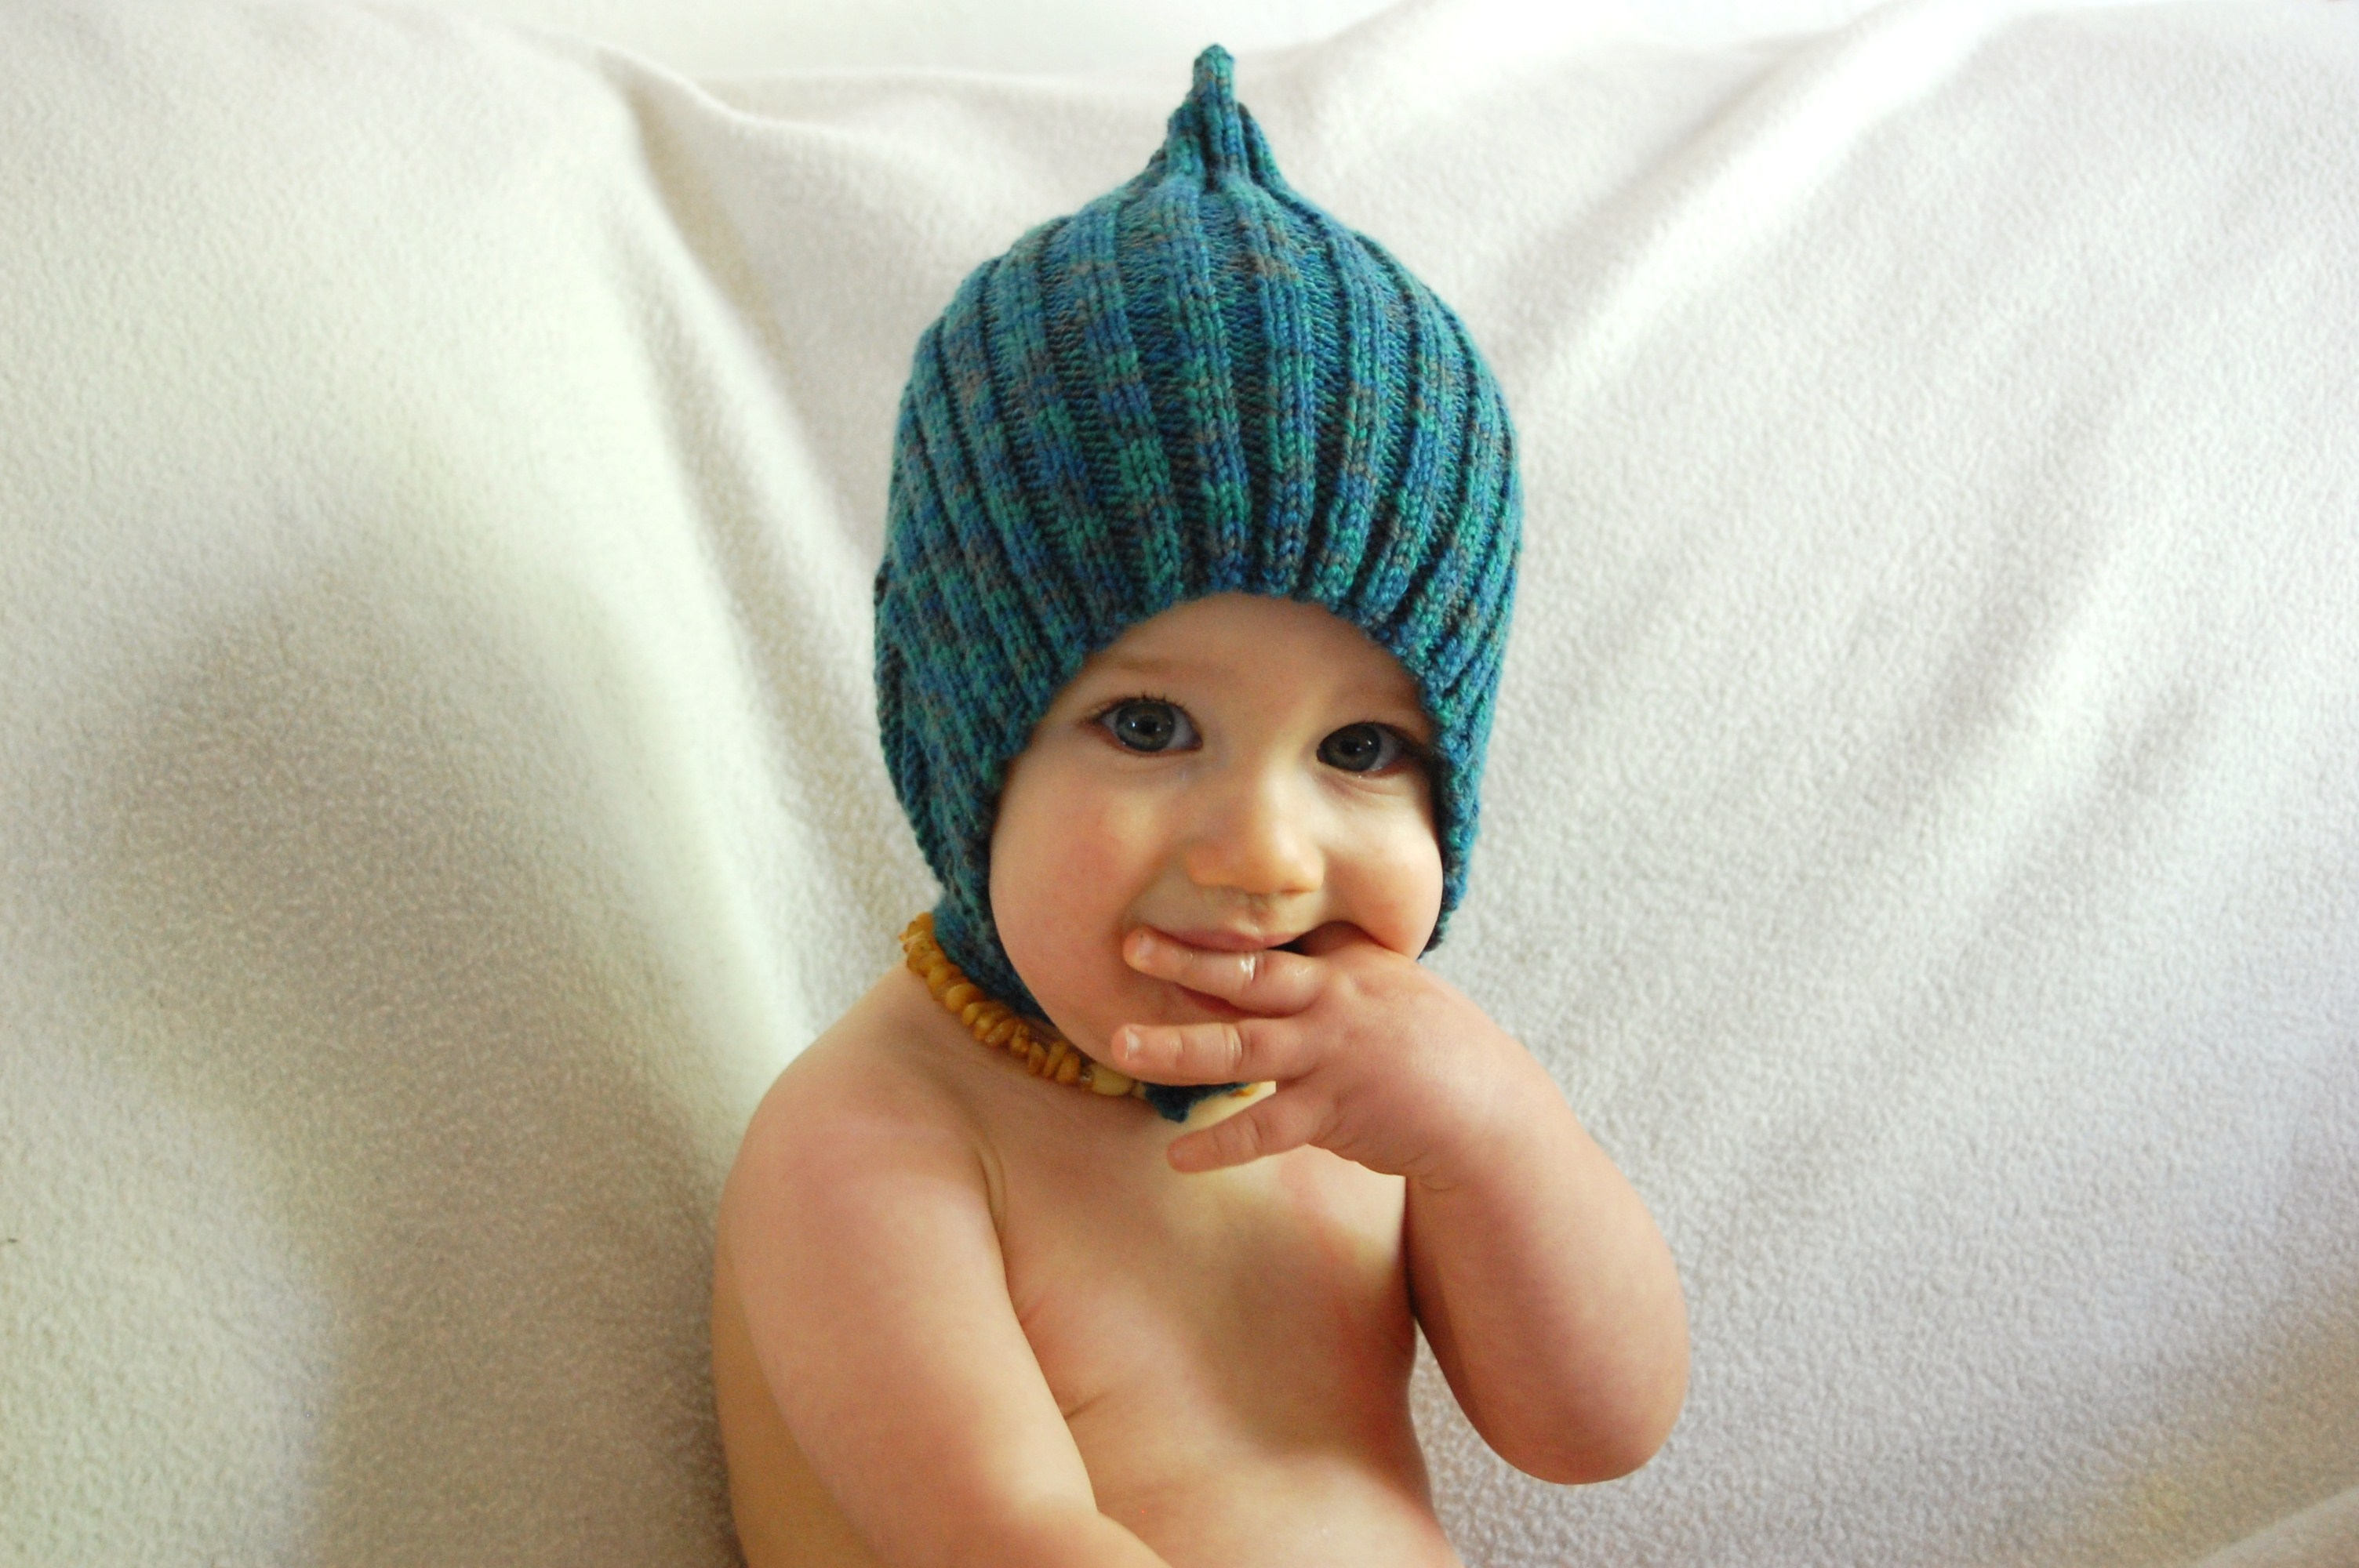 Knitting Pixie Hat Free Pattern : Pixie Hat for Sam Knittybutton